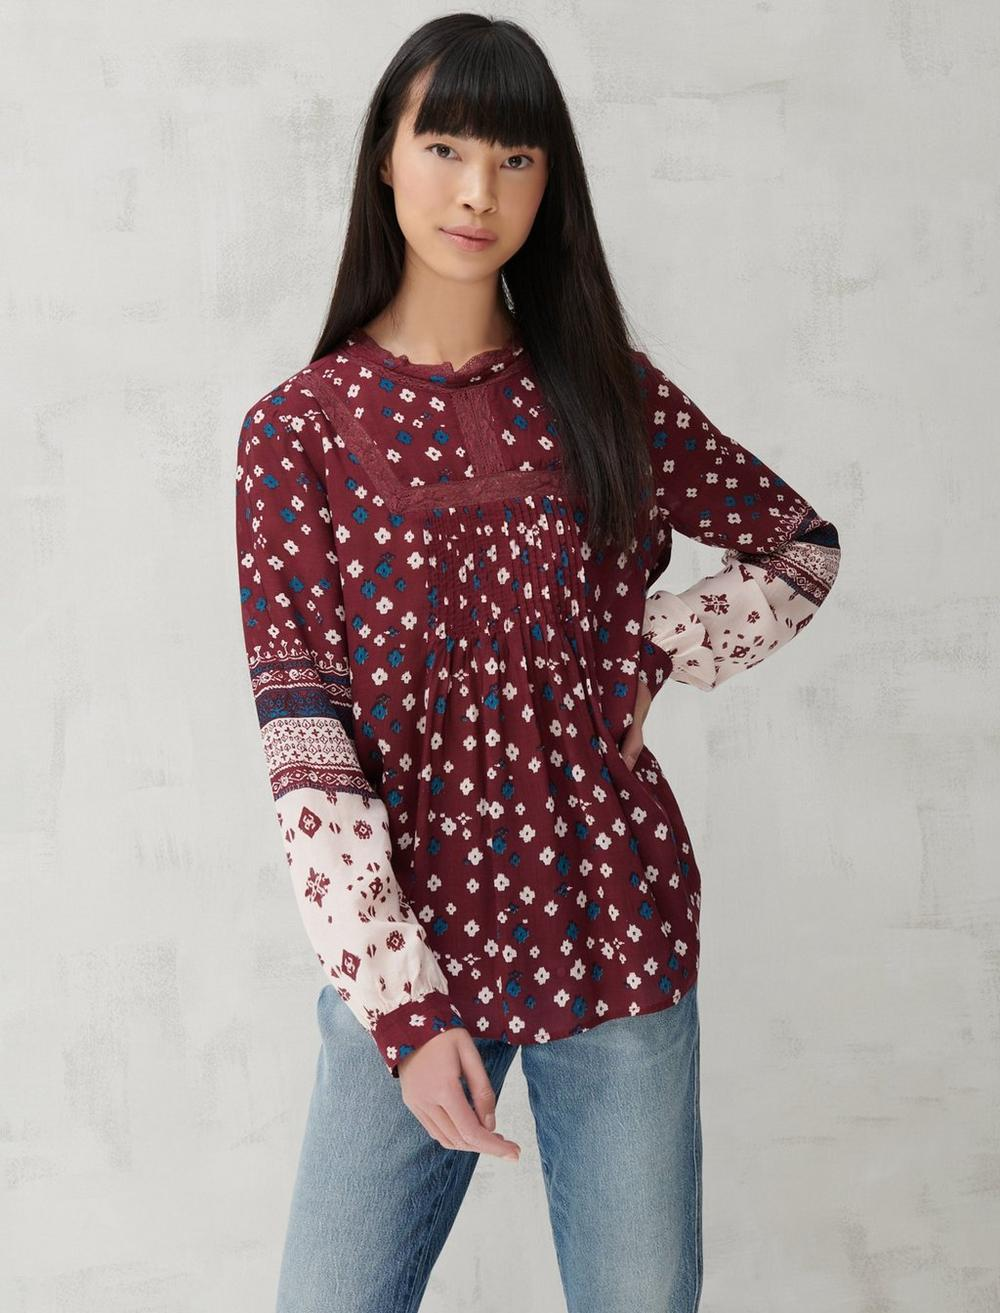 HIGH NECK LACE INSET TOP, image 1